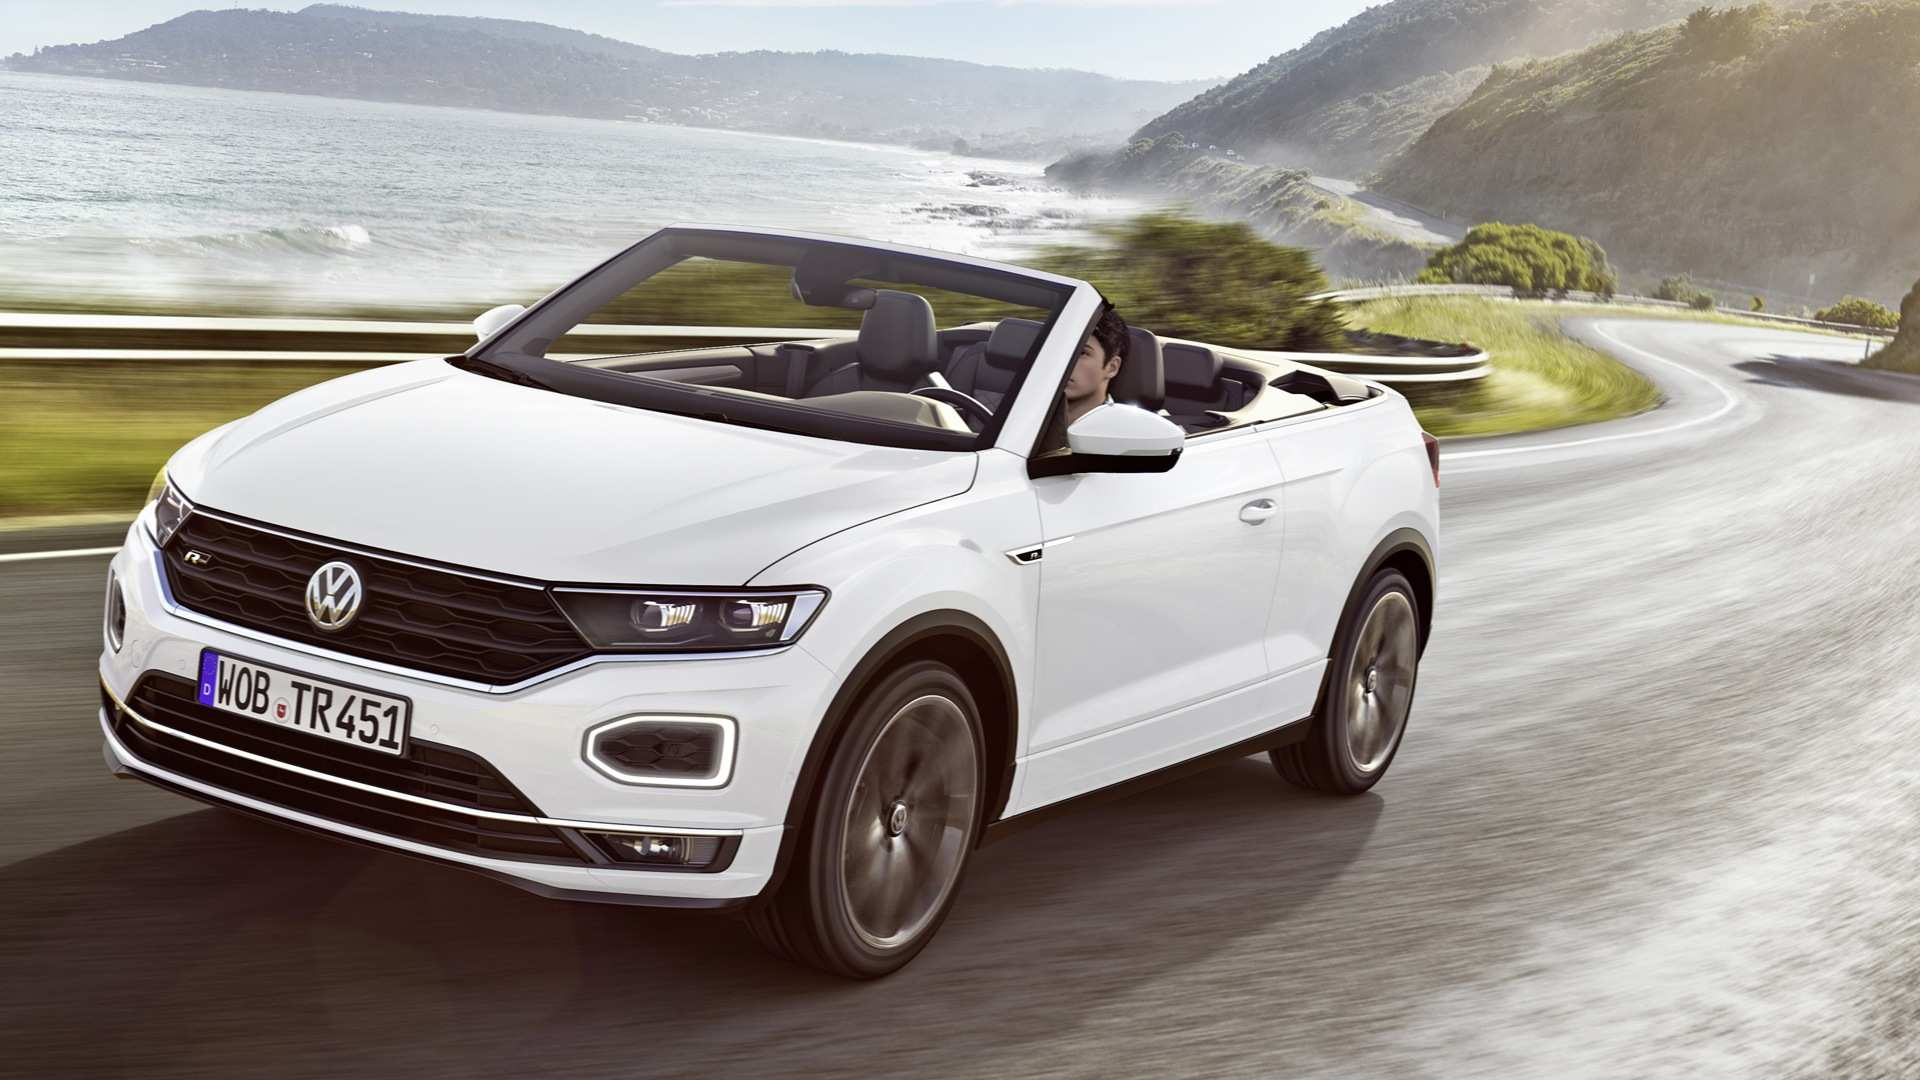 84 Great Volkswagen T Roc Cabrio 2020 Release Date by Volkswagen T Roc Cabrio 2020